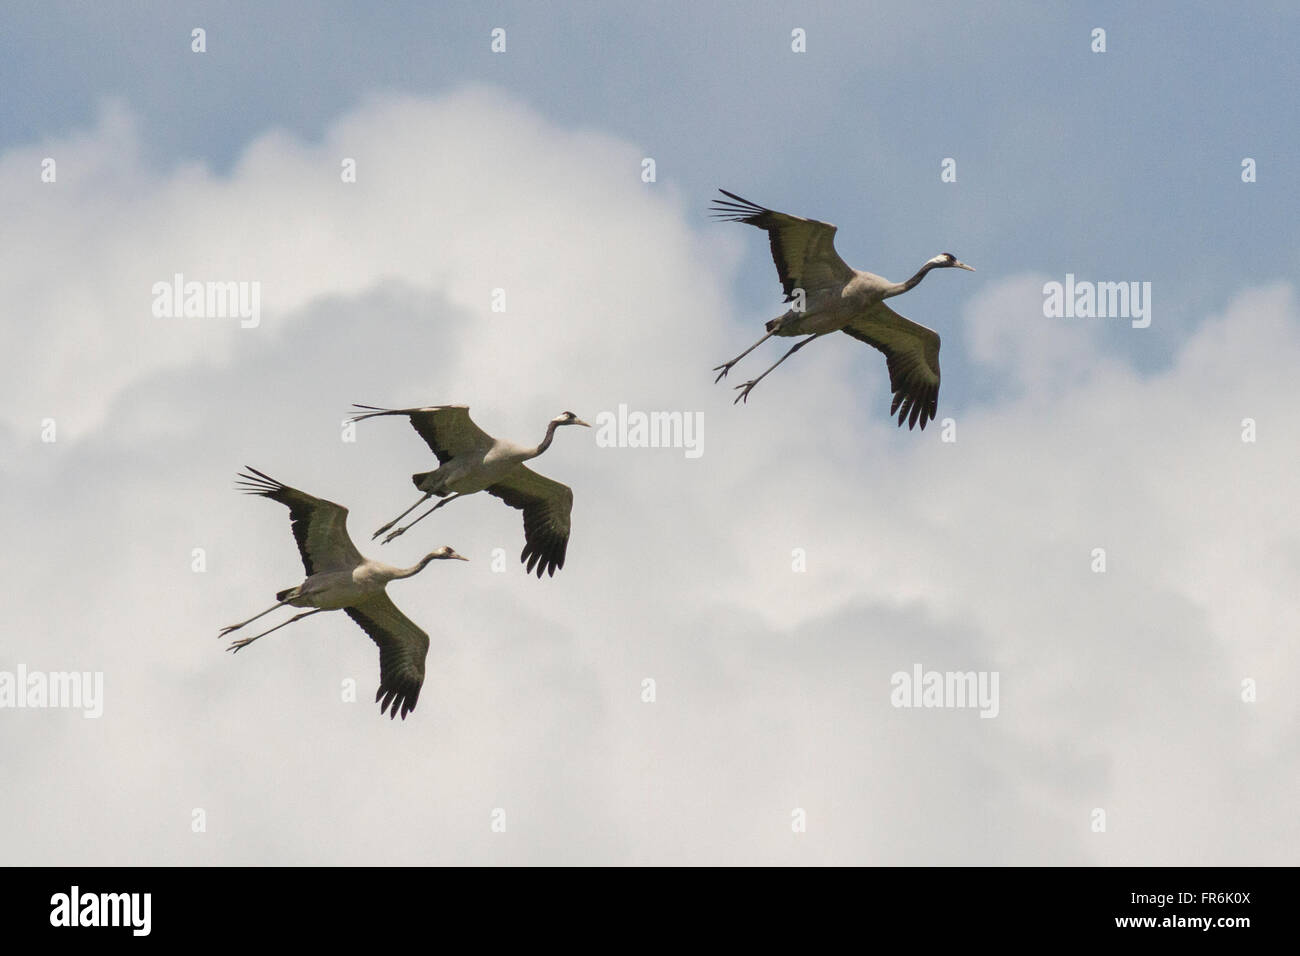 common crane (Grus grus) at Thol Bird Sanctuary, Mehsana, Gujarat, India - Stock Image